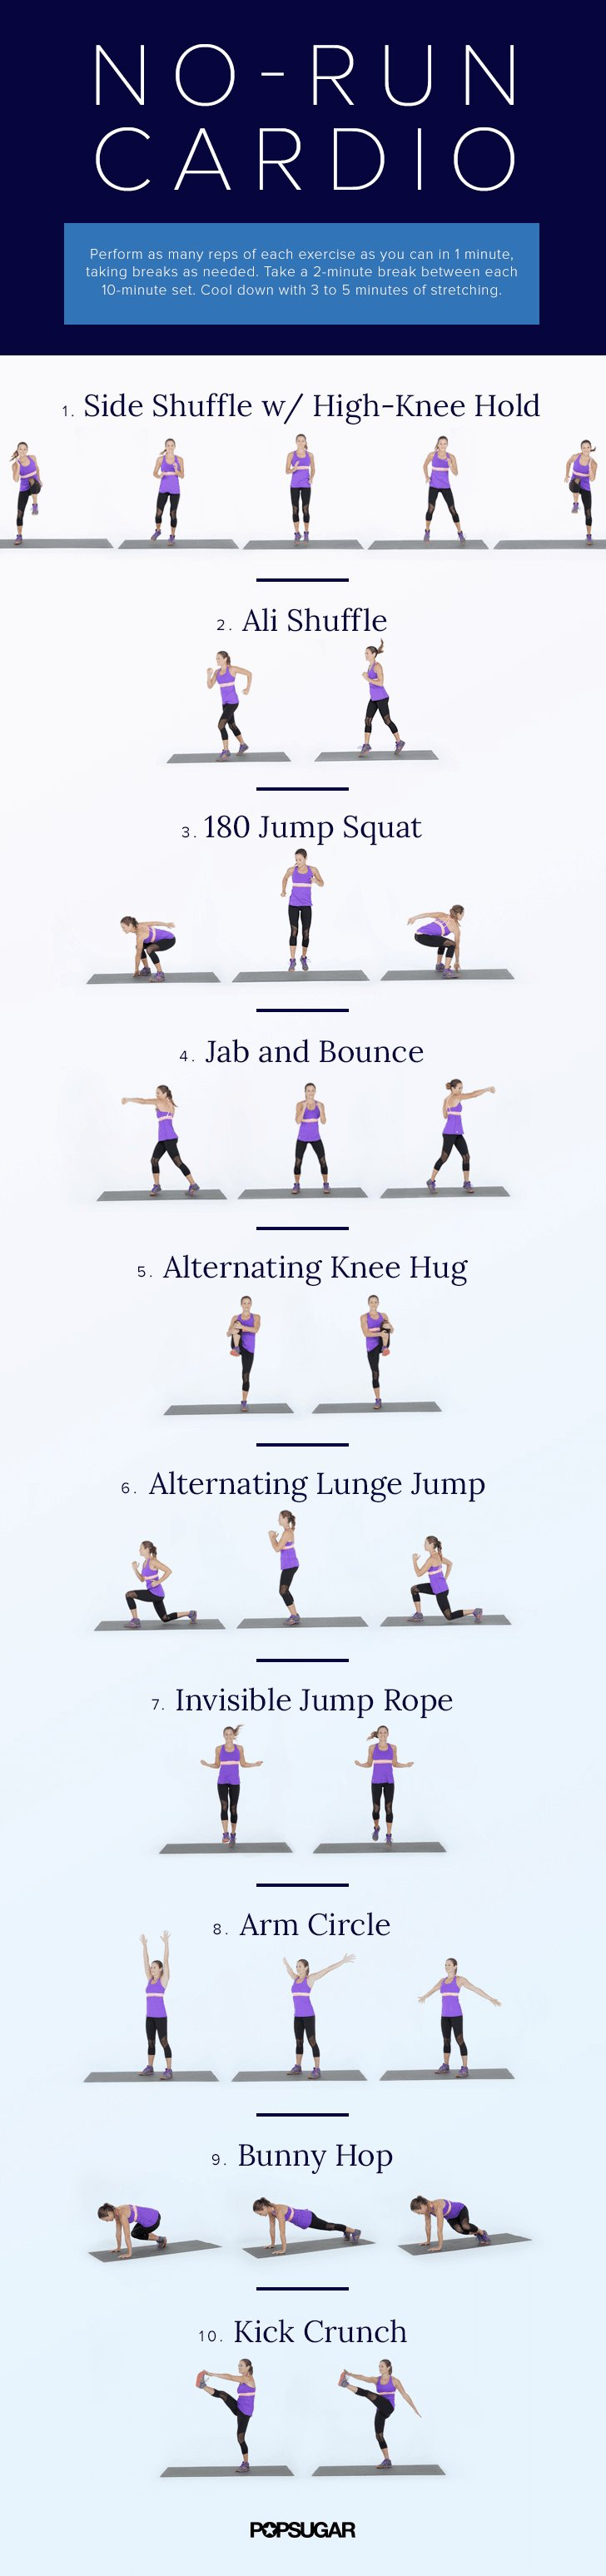 Workouts to do inside popsugar fitness australia for Living room routine